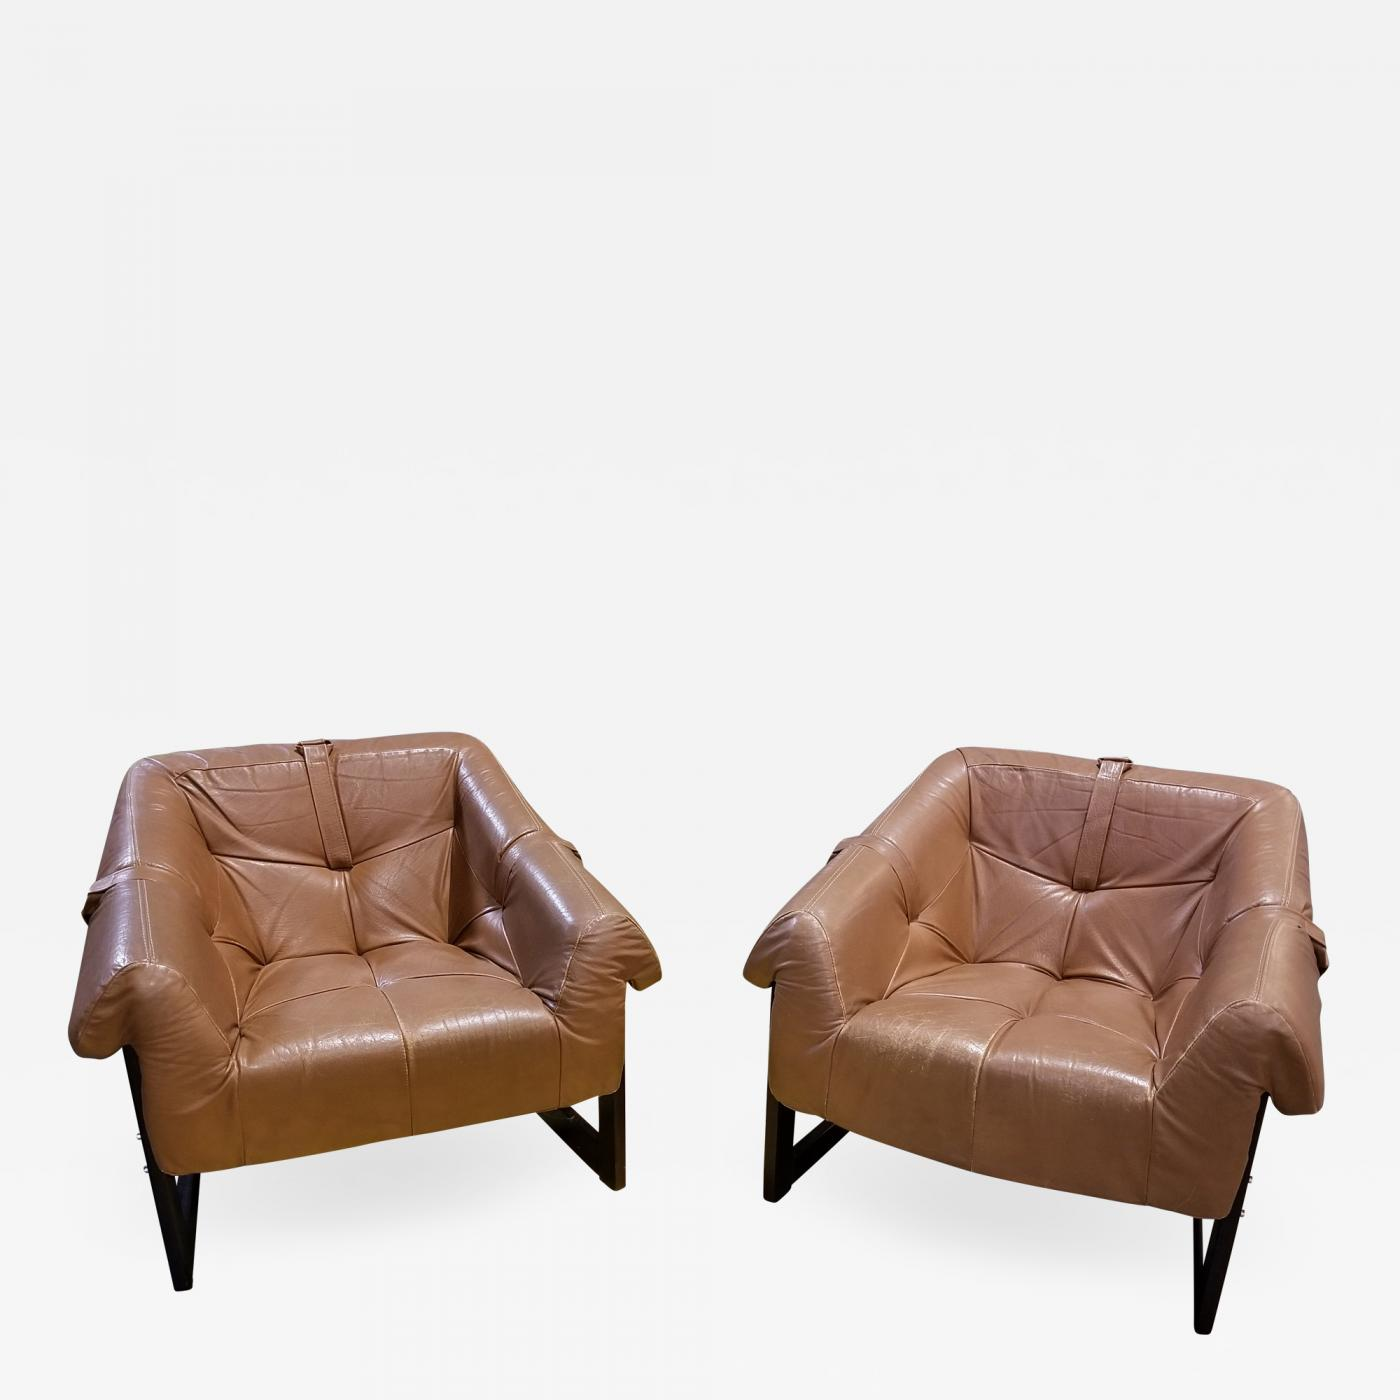 Leather Lounge Percival Lafer Pair Of Percival Lafer Rosewood And Leather Lounge Chairs